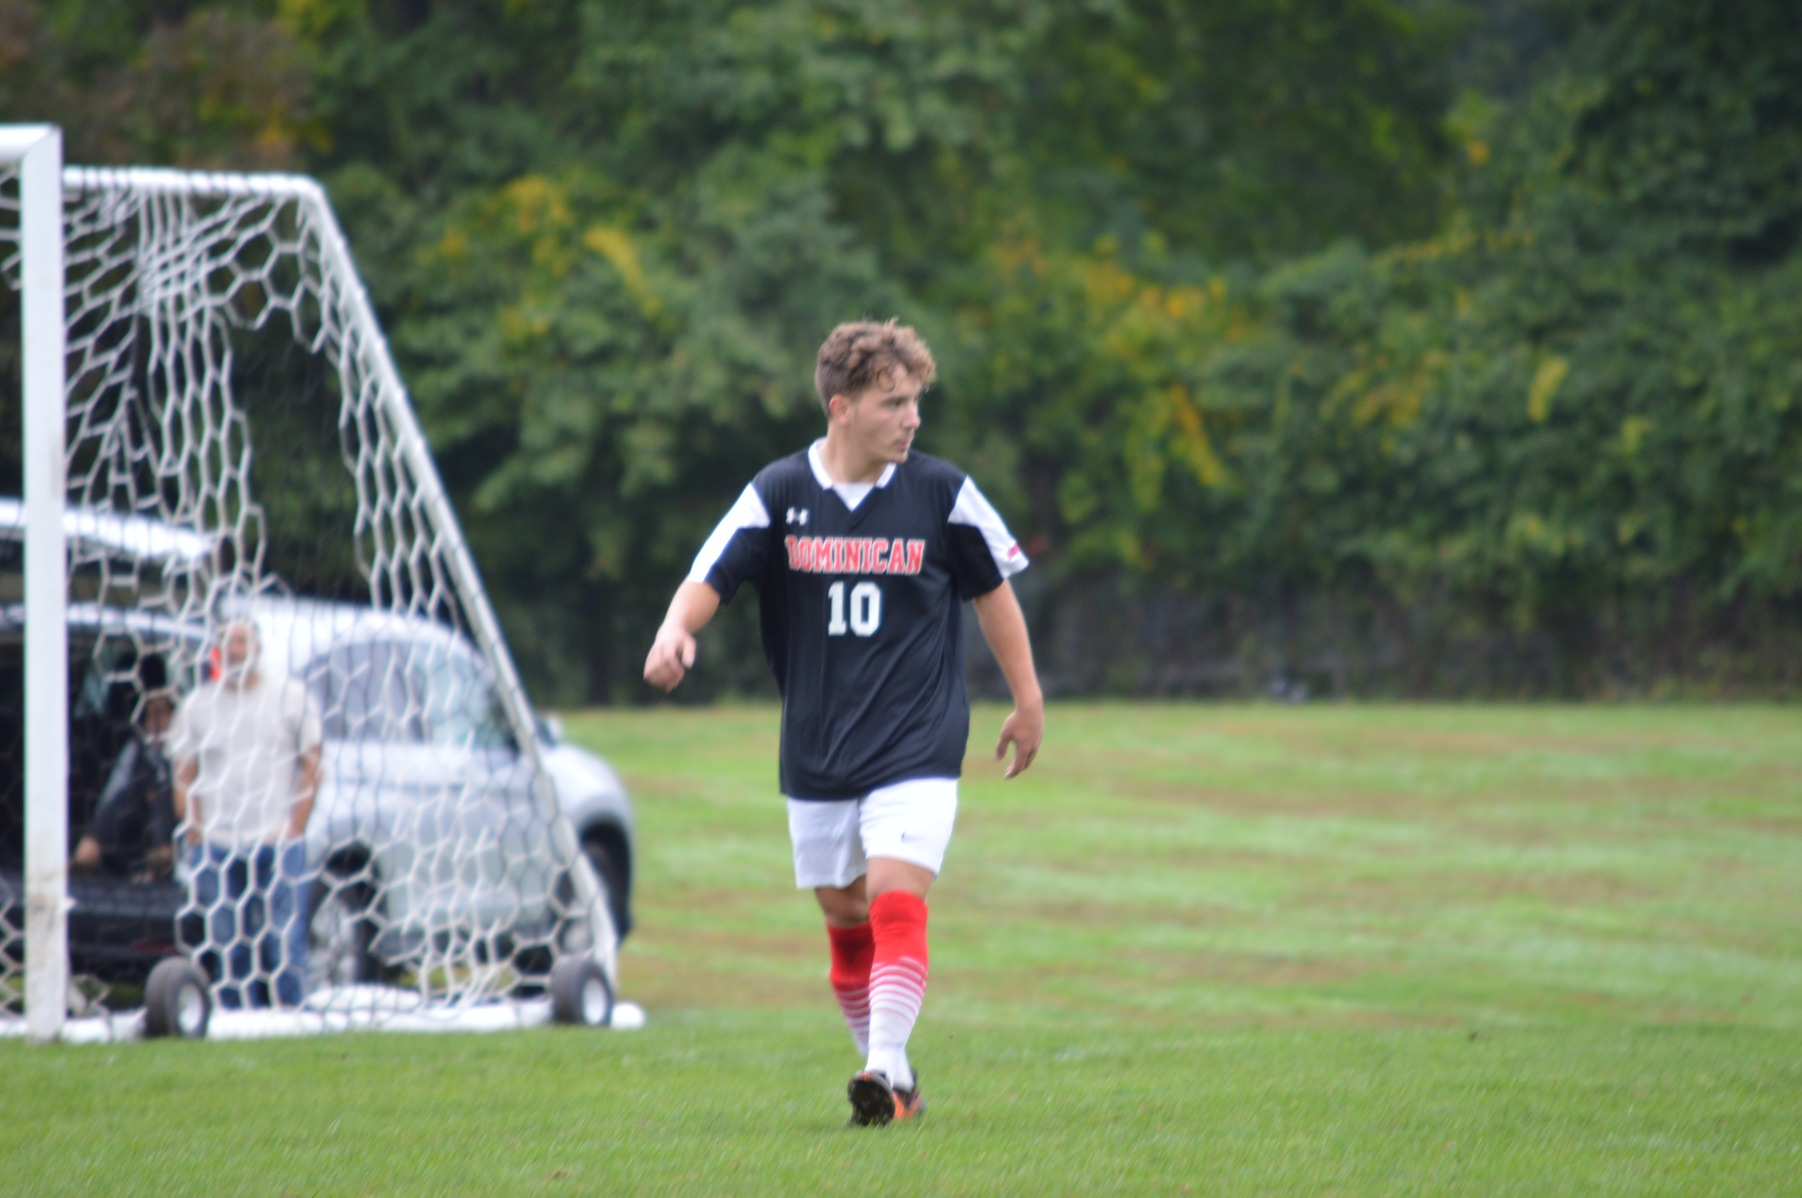 MEN'S SOCCER FALLS IN NON-CONFERENCE GAME TO MERCY COLLEGE